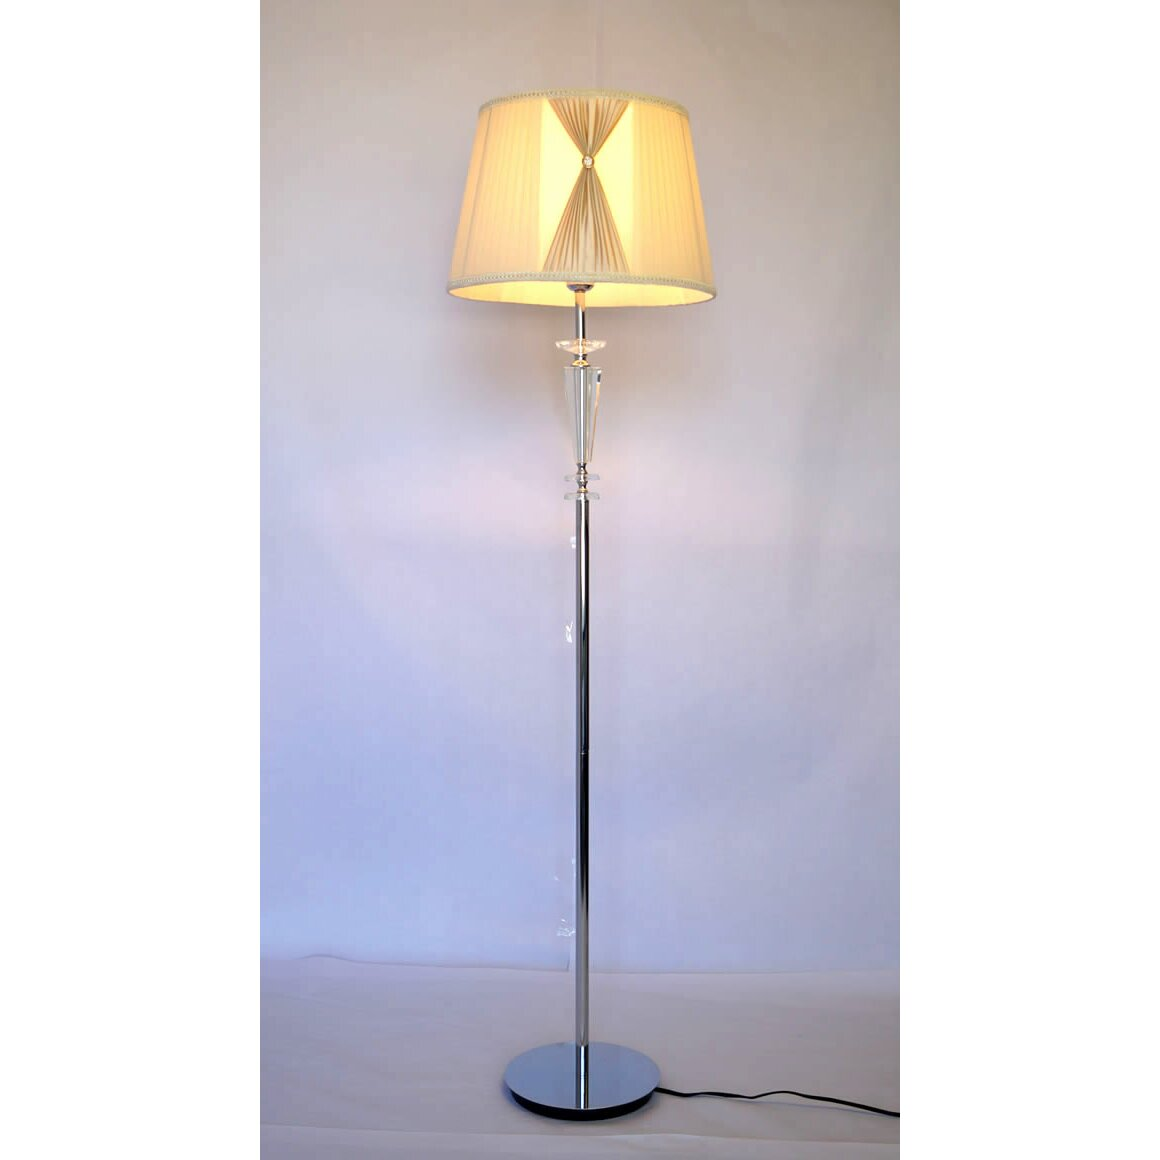 "CaliforniaLighting 62.2"" LED Floor Lamp 